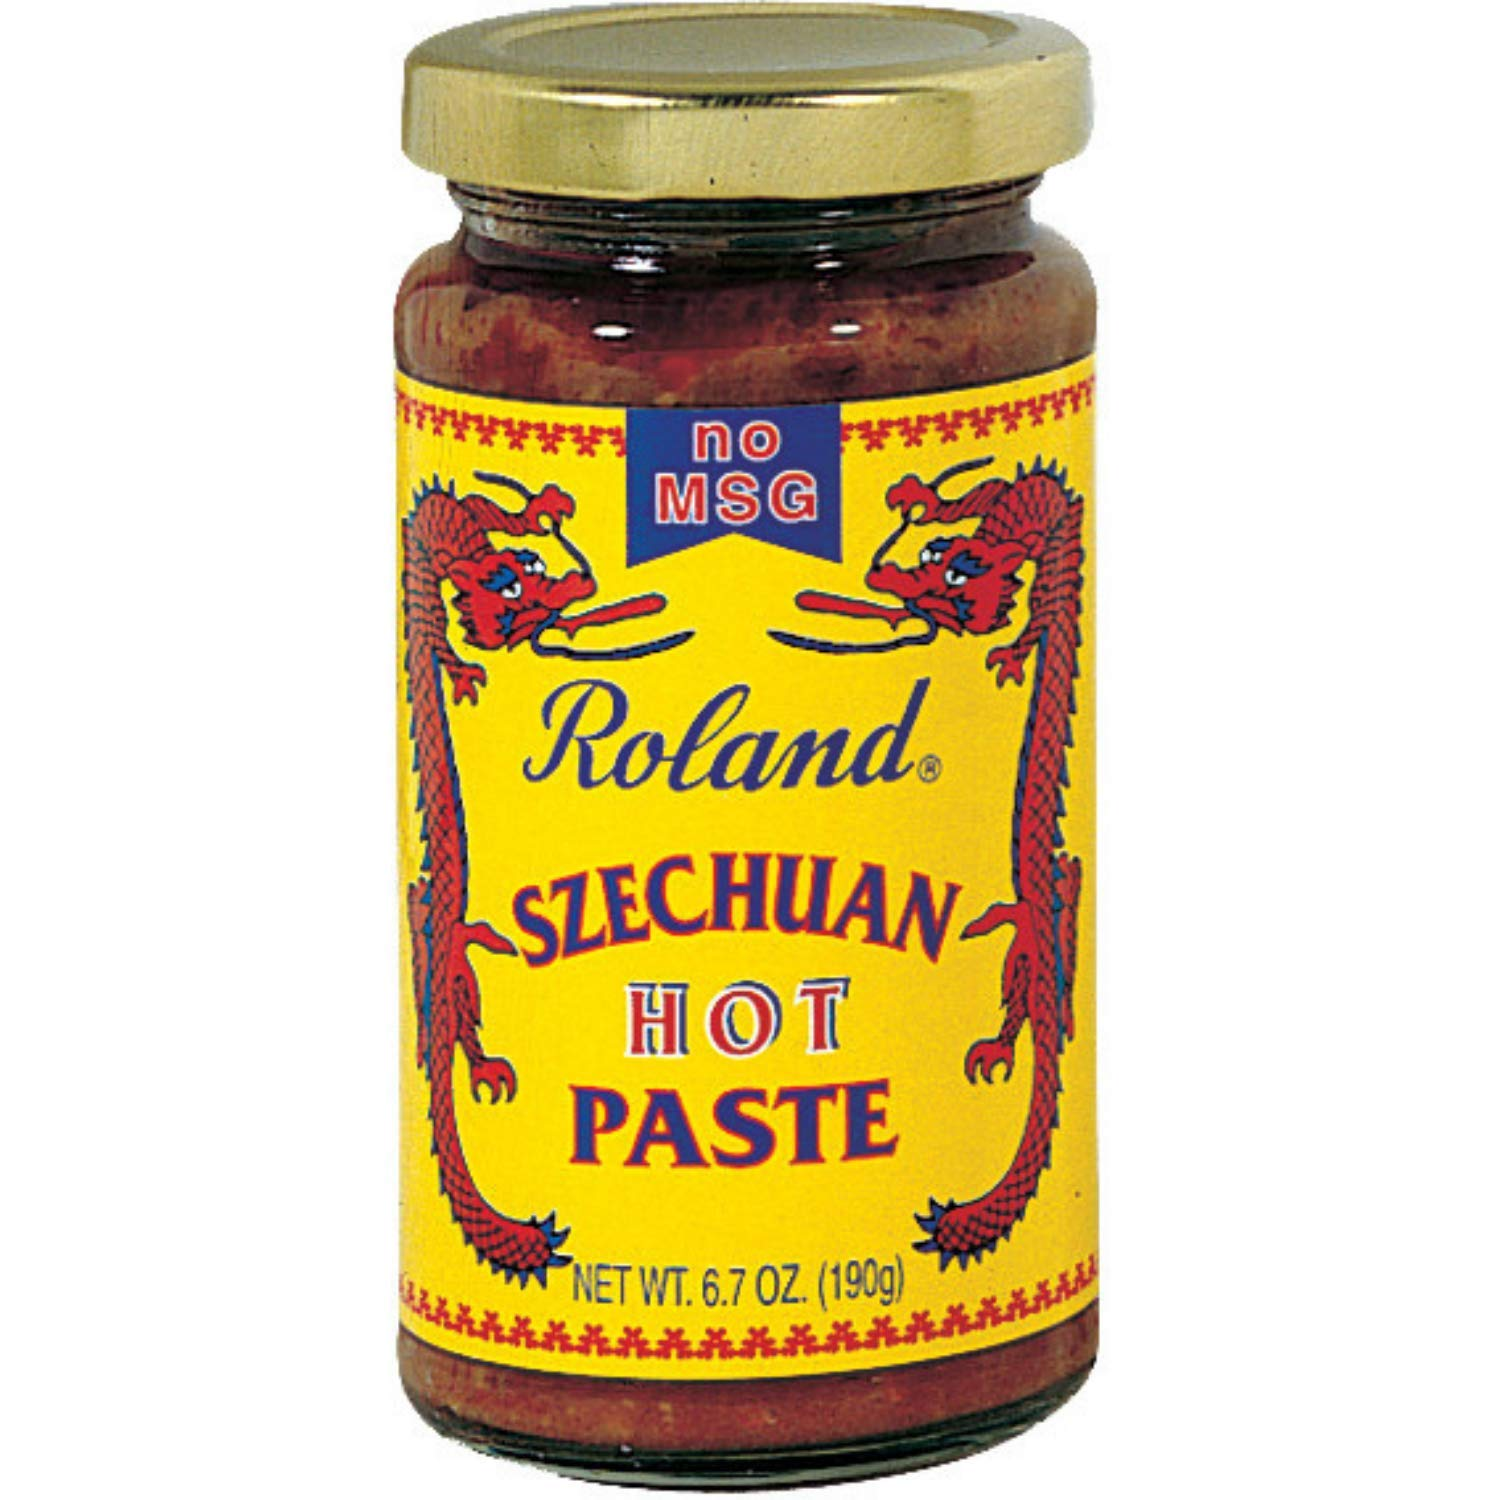 Roland Foods Hot Szechuan Paste, No MSG, Specialty Imported Food, 6.7-Ounce Jar, red (RO014)